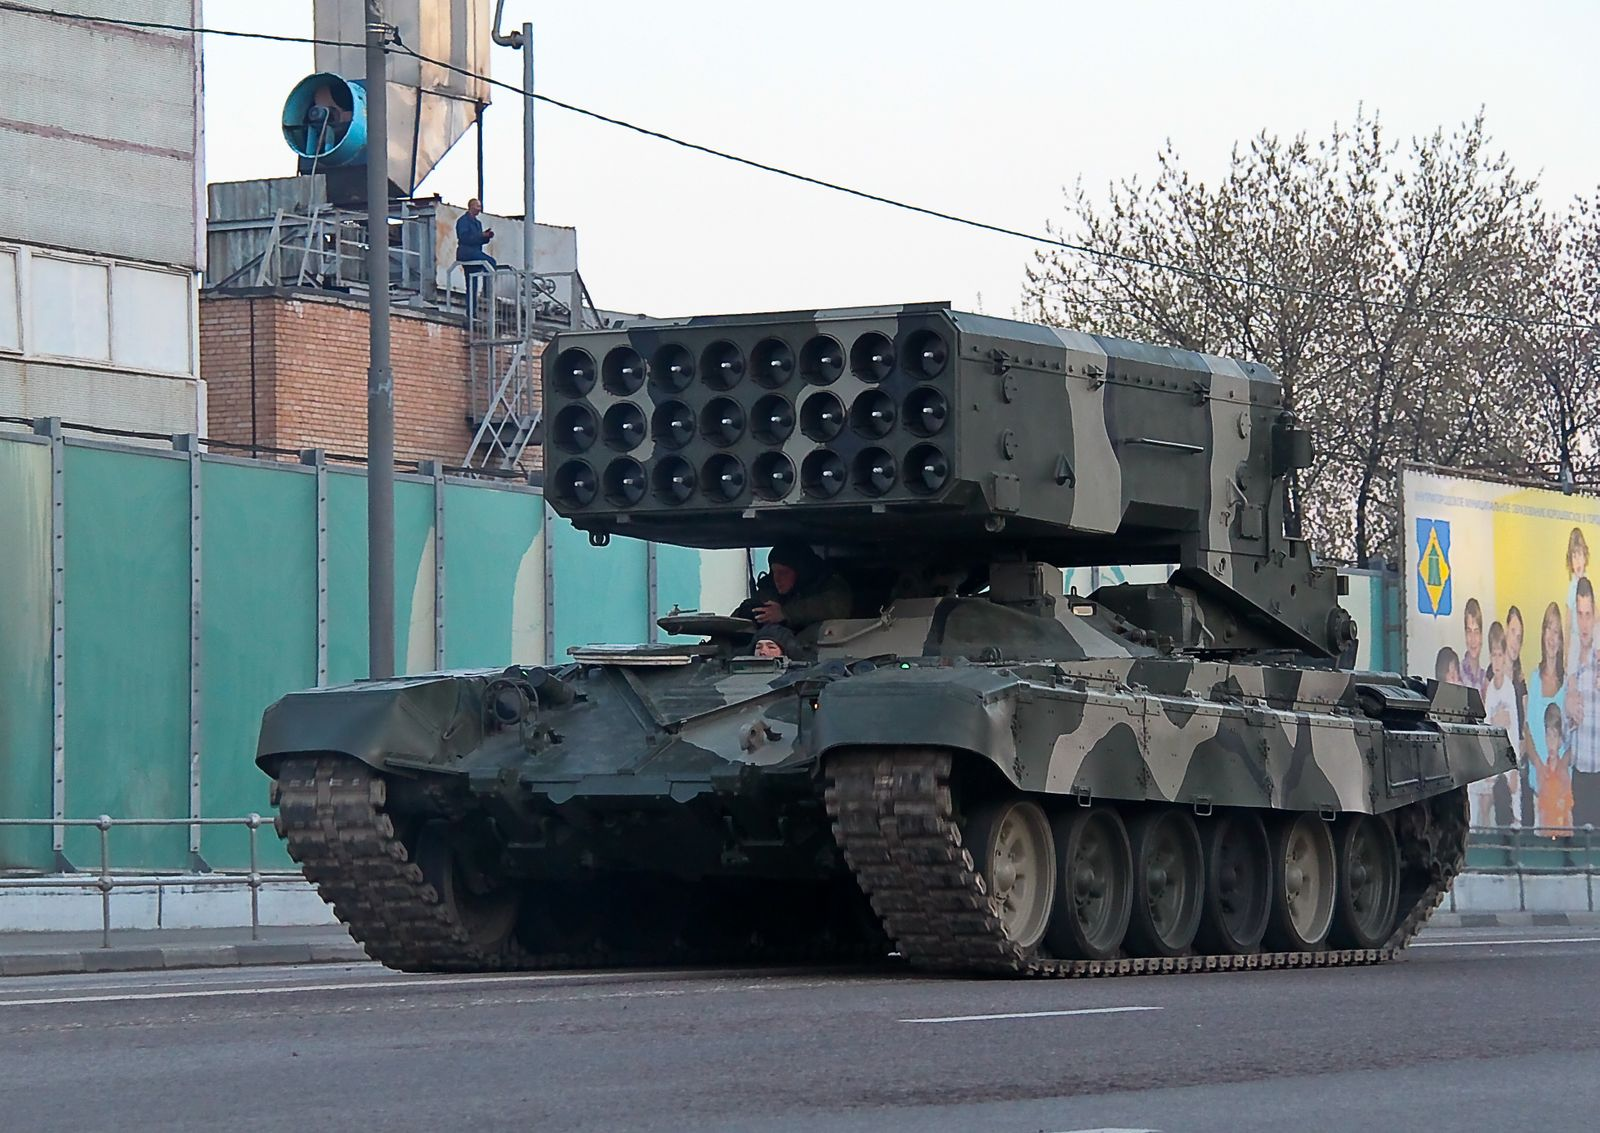 http://upload.wikimedia.org/wikipedia/commons/9/96/Russian_TOS-1_MRL.jpg